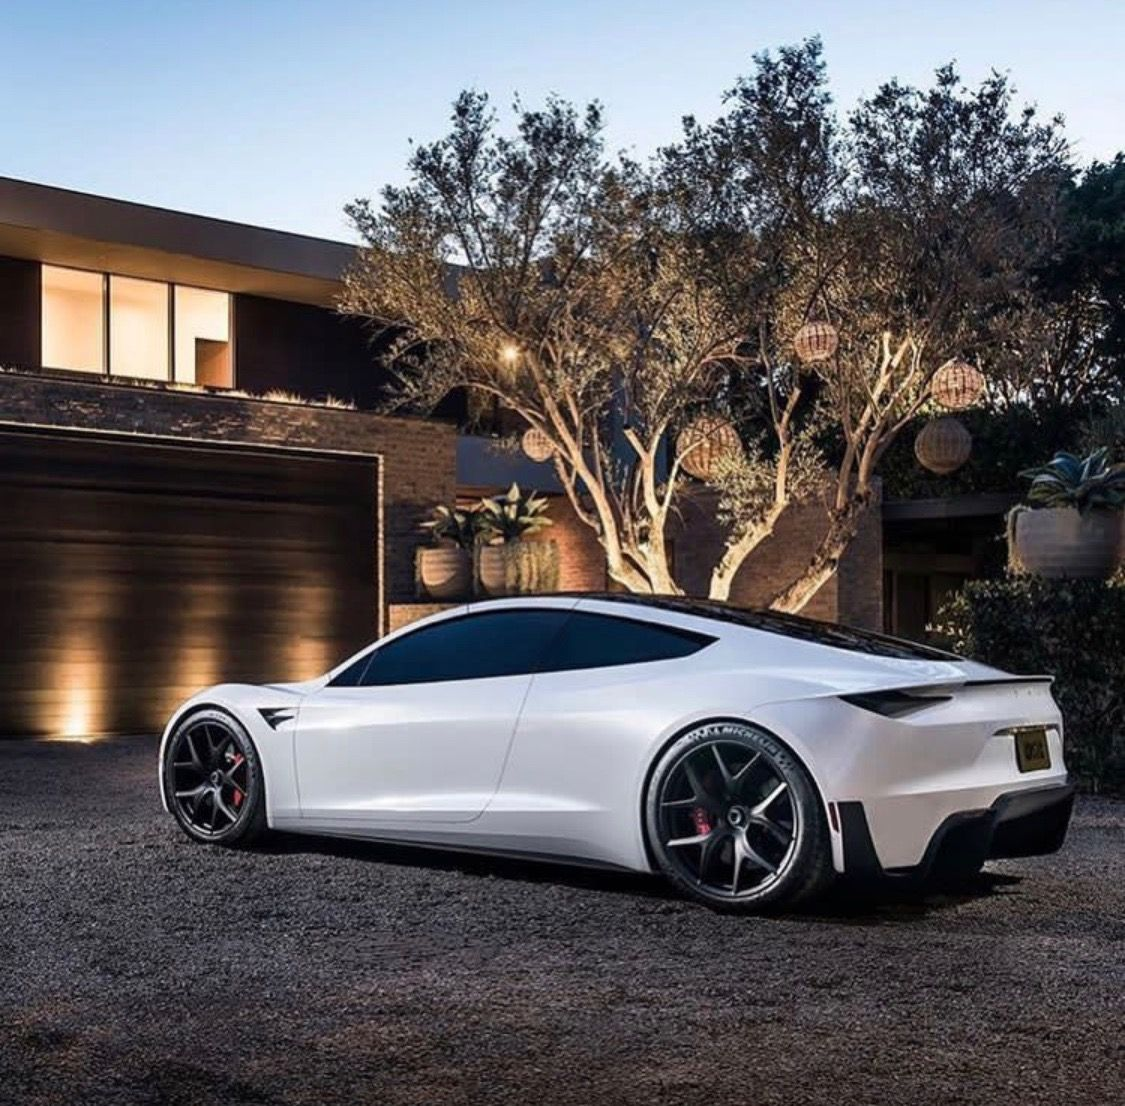 10 Fearsome Wheels Rims Concept Ideas Tesla Roadster Electric Sports Car Dream Cars